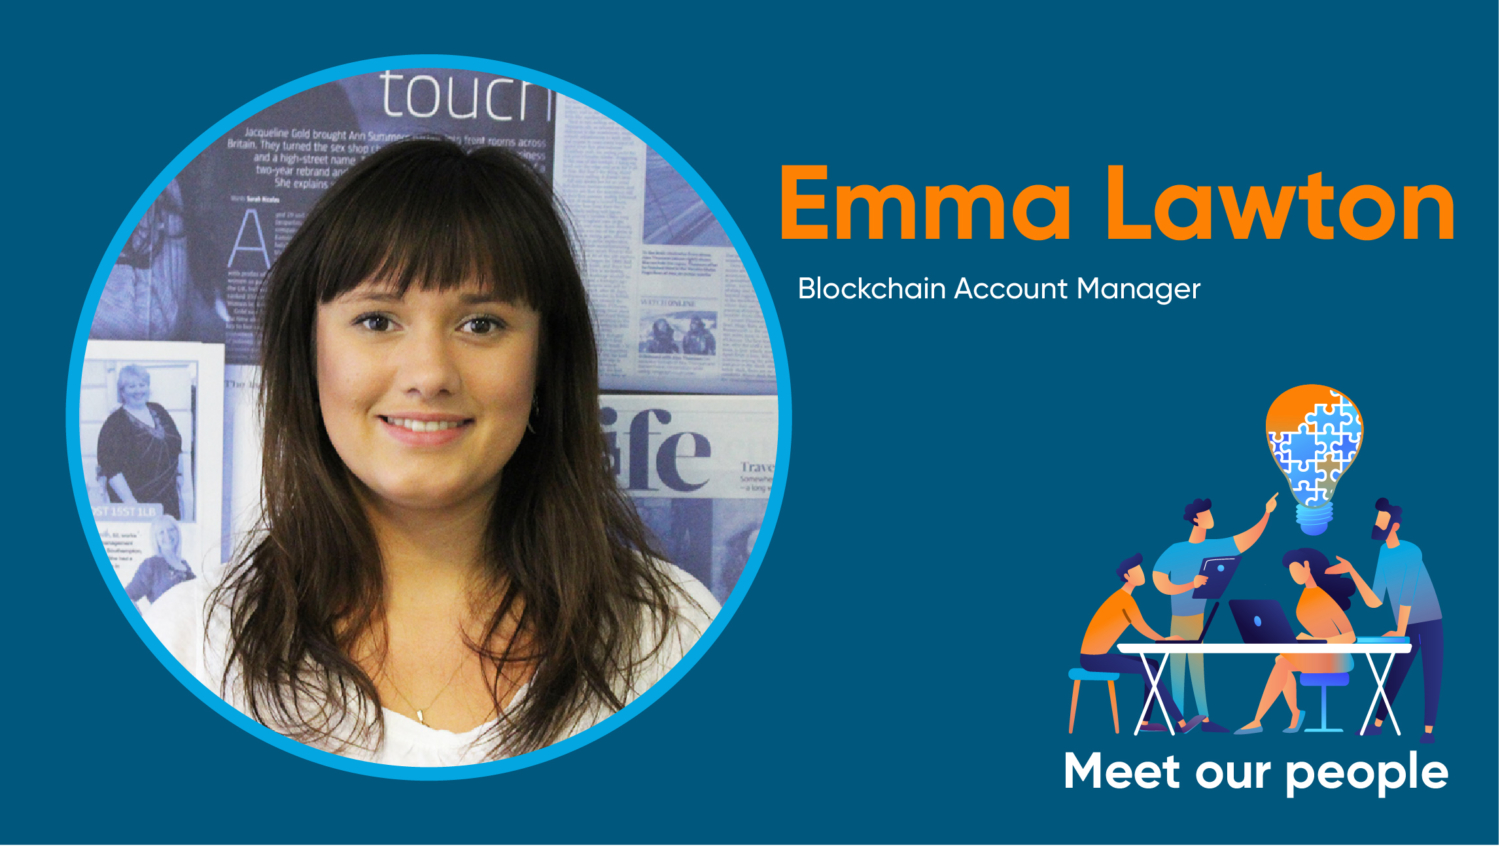 Emma Lawton, meet our people